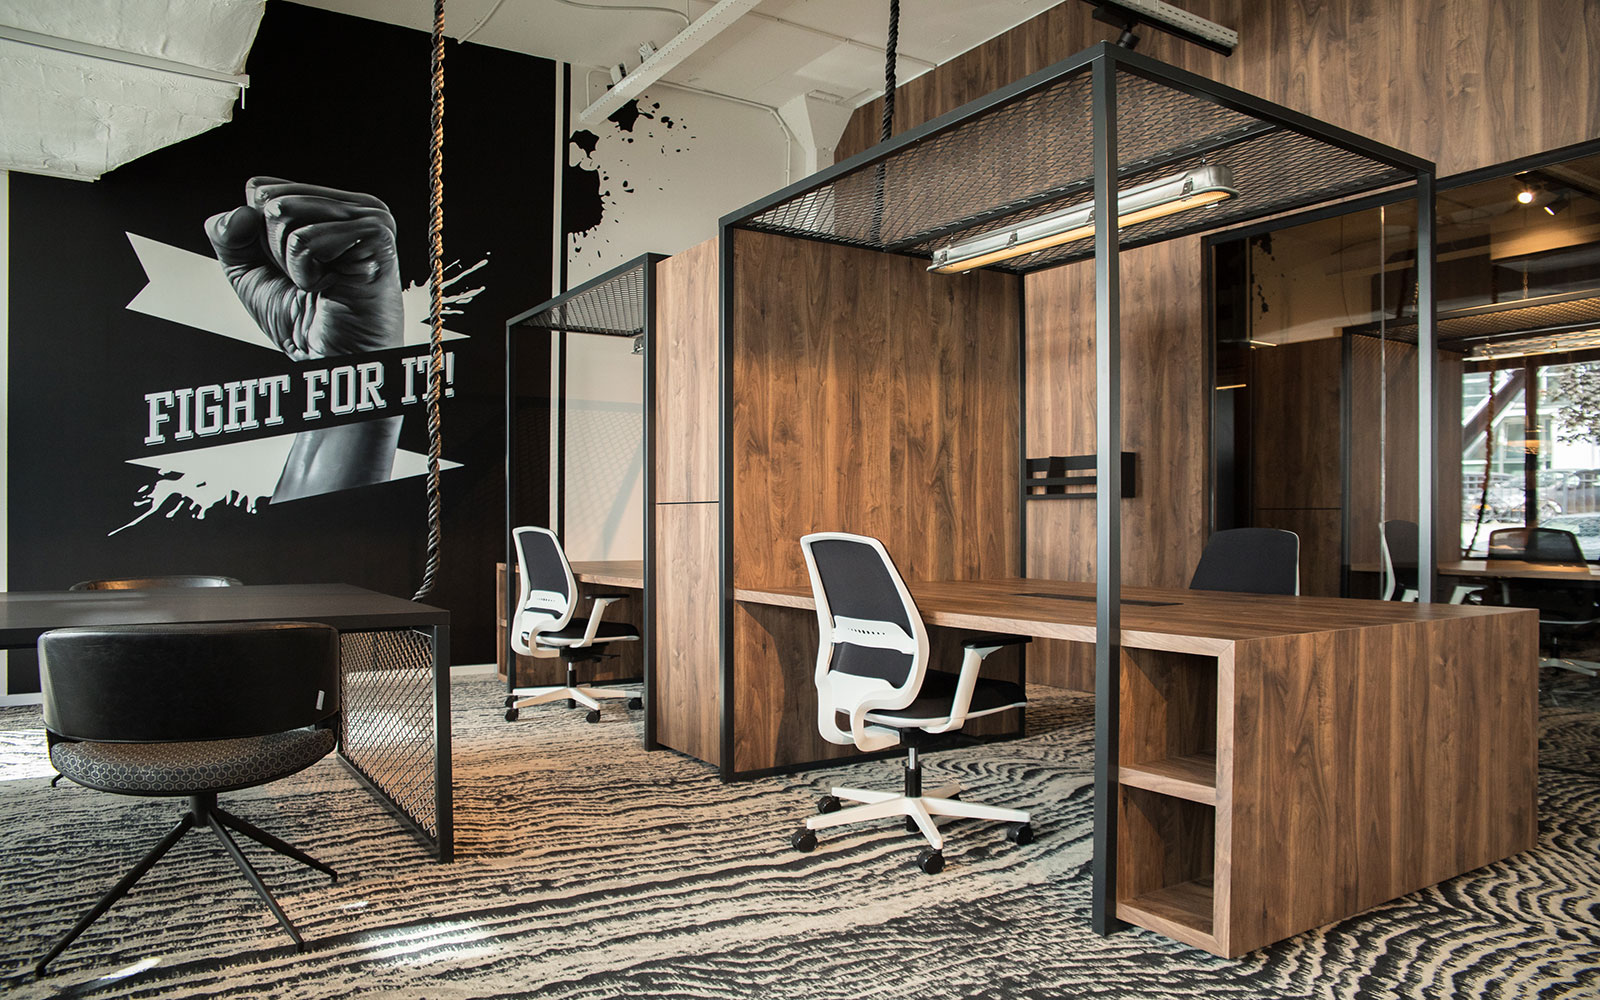 pom_kick-offices-philips-stadion_03